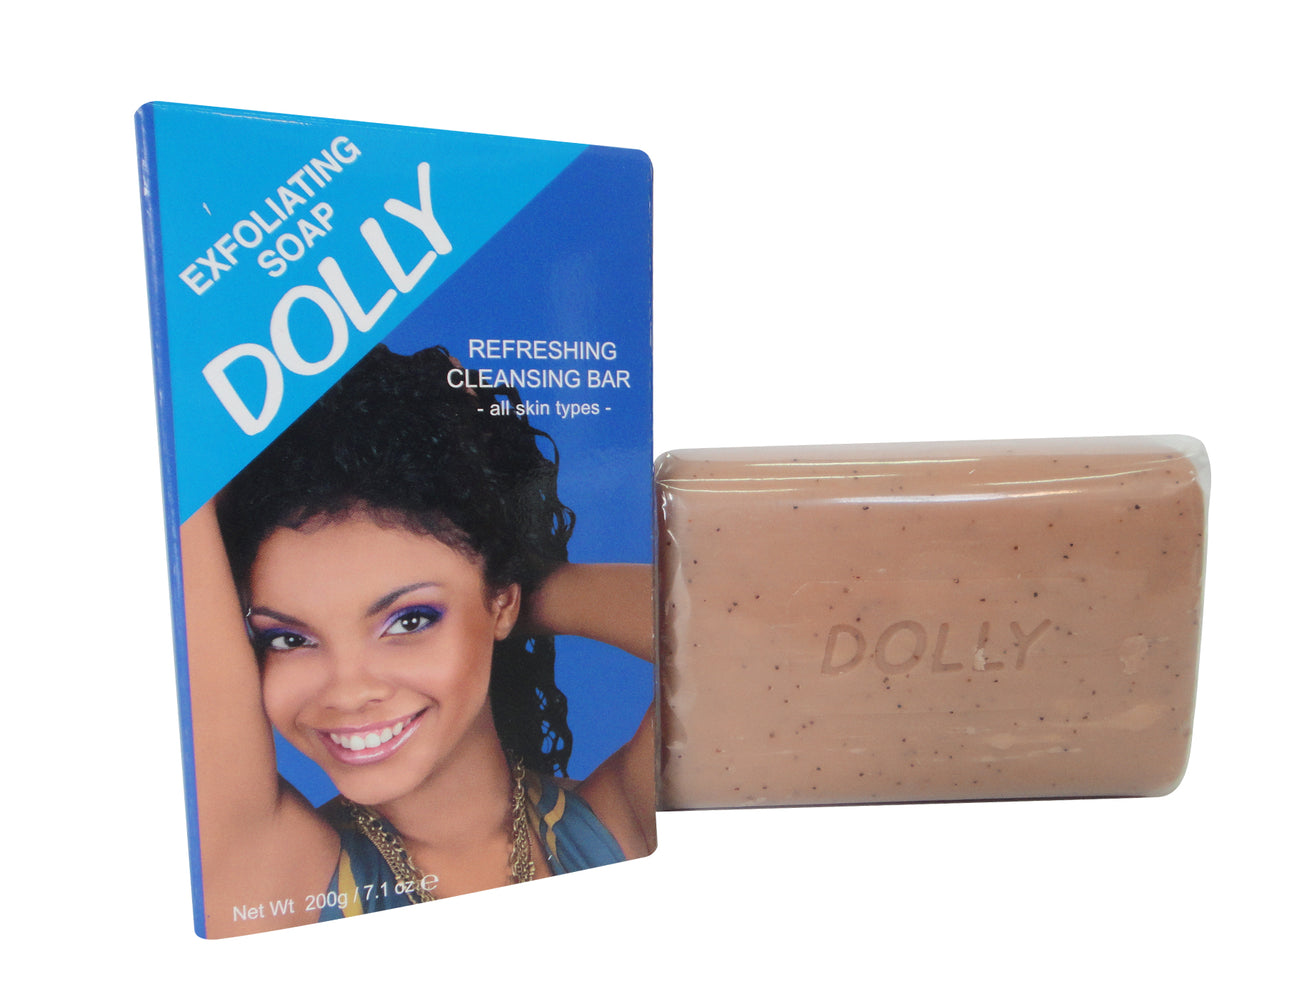 Dolly Exfoliating Soap mitchellbrands - Mitchell Brands - Skin Lightening, Skin Brightening, Fade Dark Spots, Shea Butter, Hair Growth Products